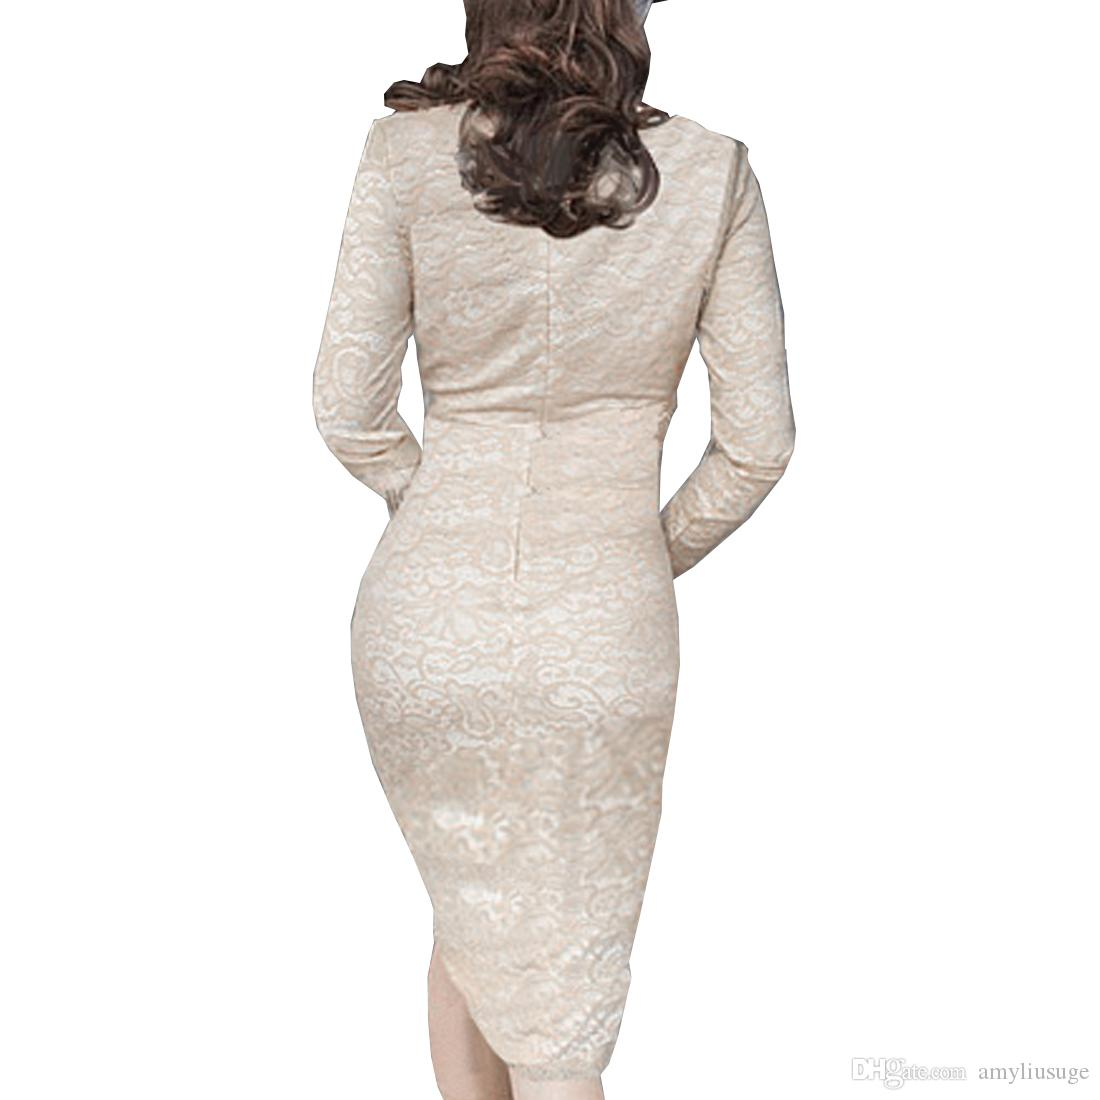 Women's Bodycon Pencil Dress Long Sleeve Lace Cocktail Club Wedding Party Formal Celeb Ladies 2016 Spring AYSB06